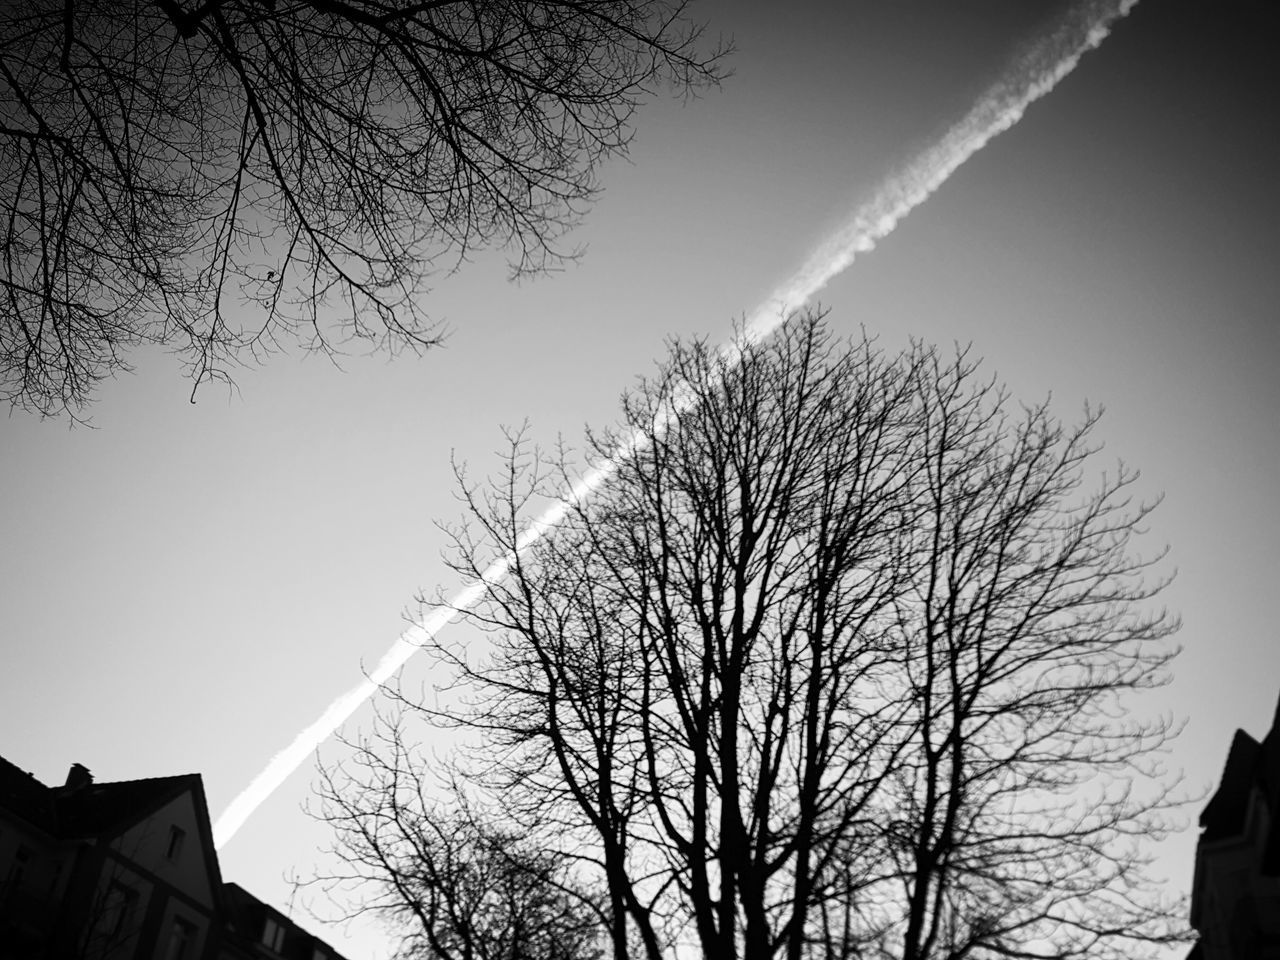 bare tree, tree, branch, vapor trail, built structure, building exterior, low angle view, architecture, contrail, sky, outdoors, nature, day, no people, beauty in nature, clear sky